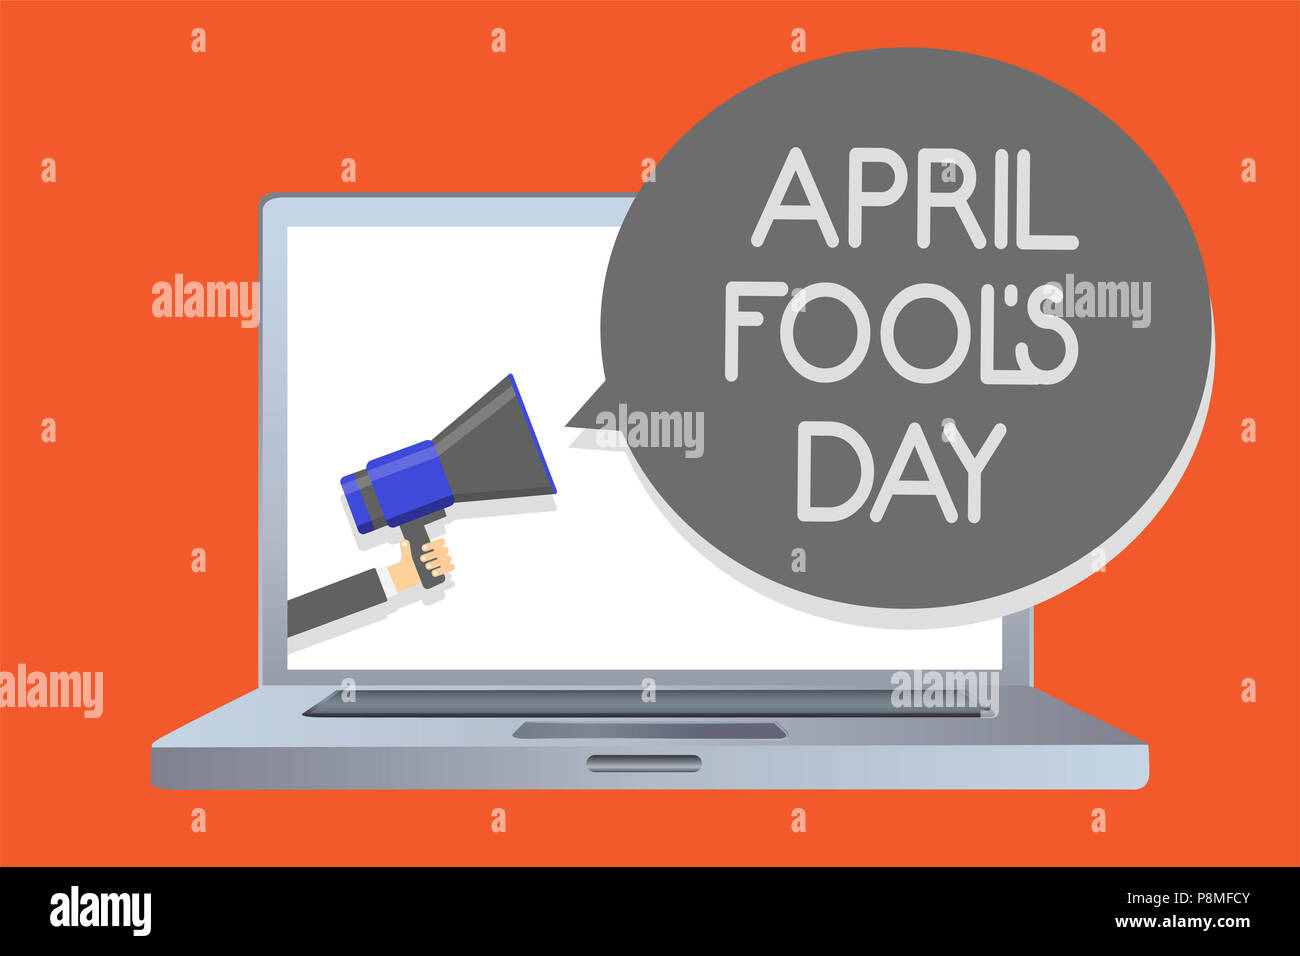 Writing note showing April Fool s is Day. Business photo showcasing Practical jokes humor pranks Celebration funny foolish Network message social medi - Stock Image